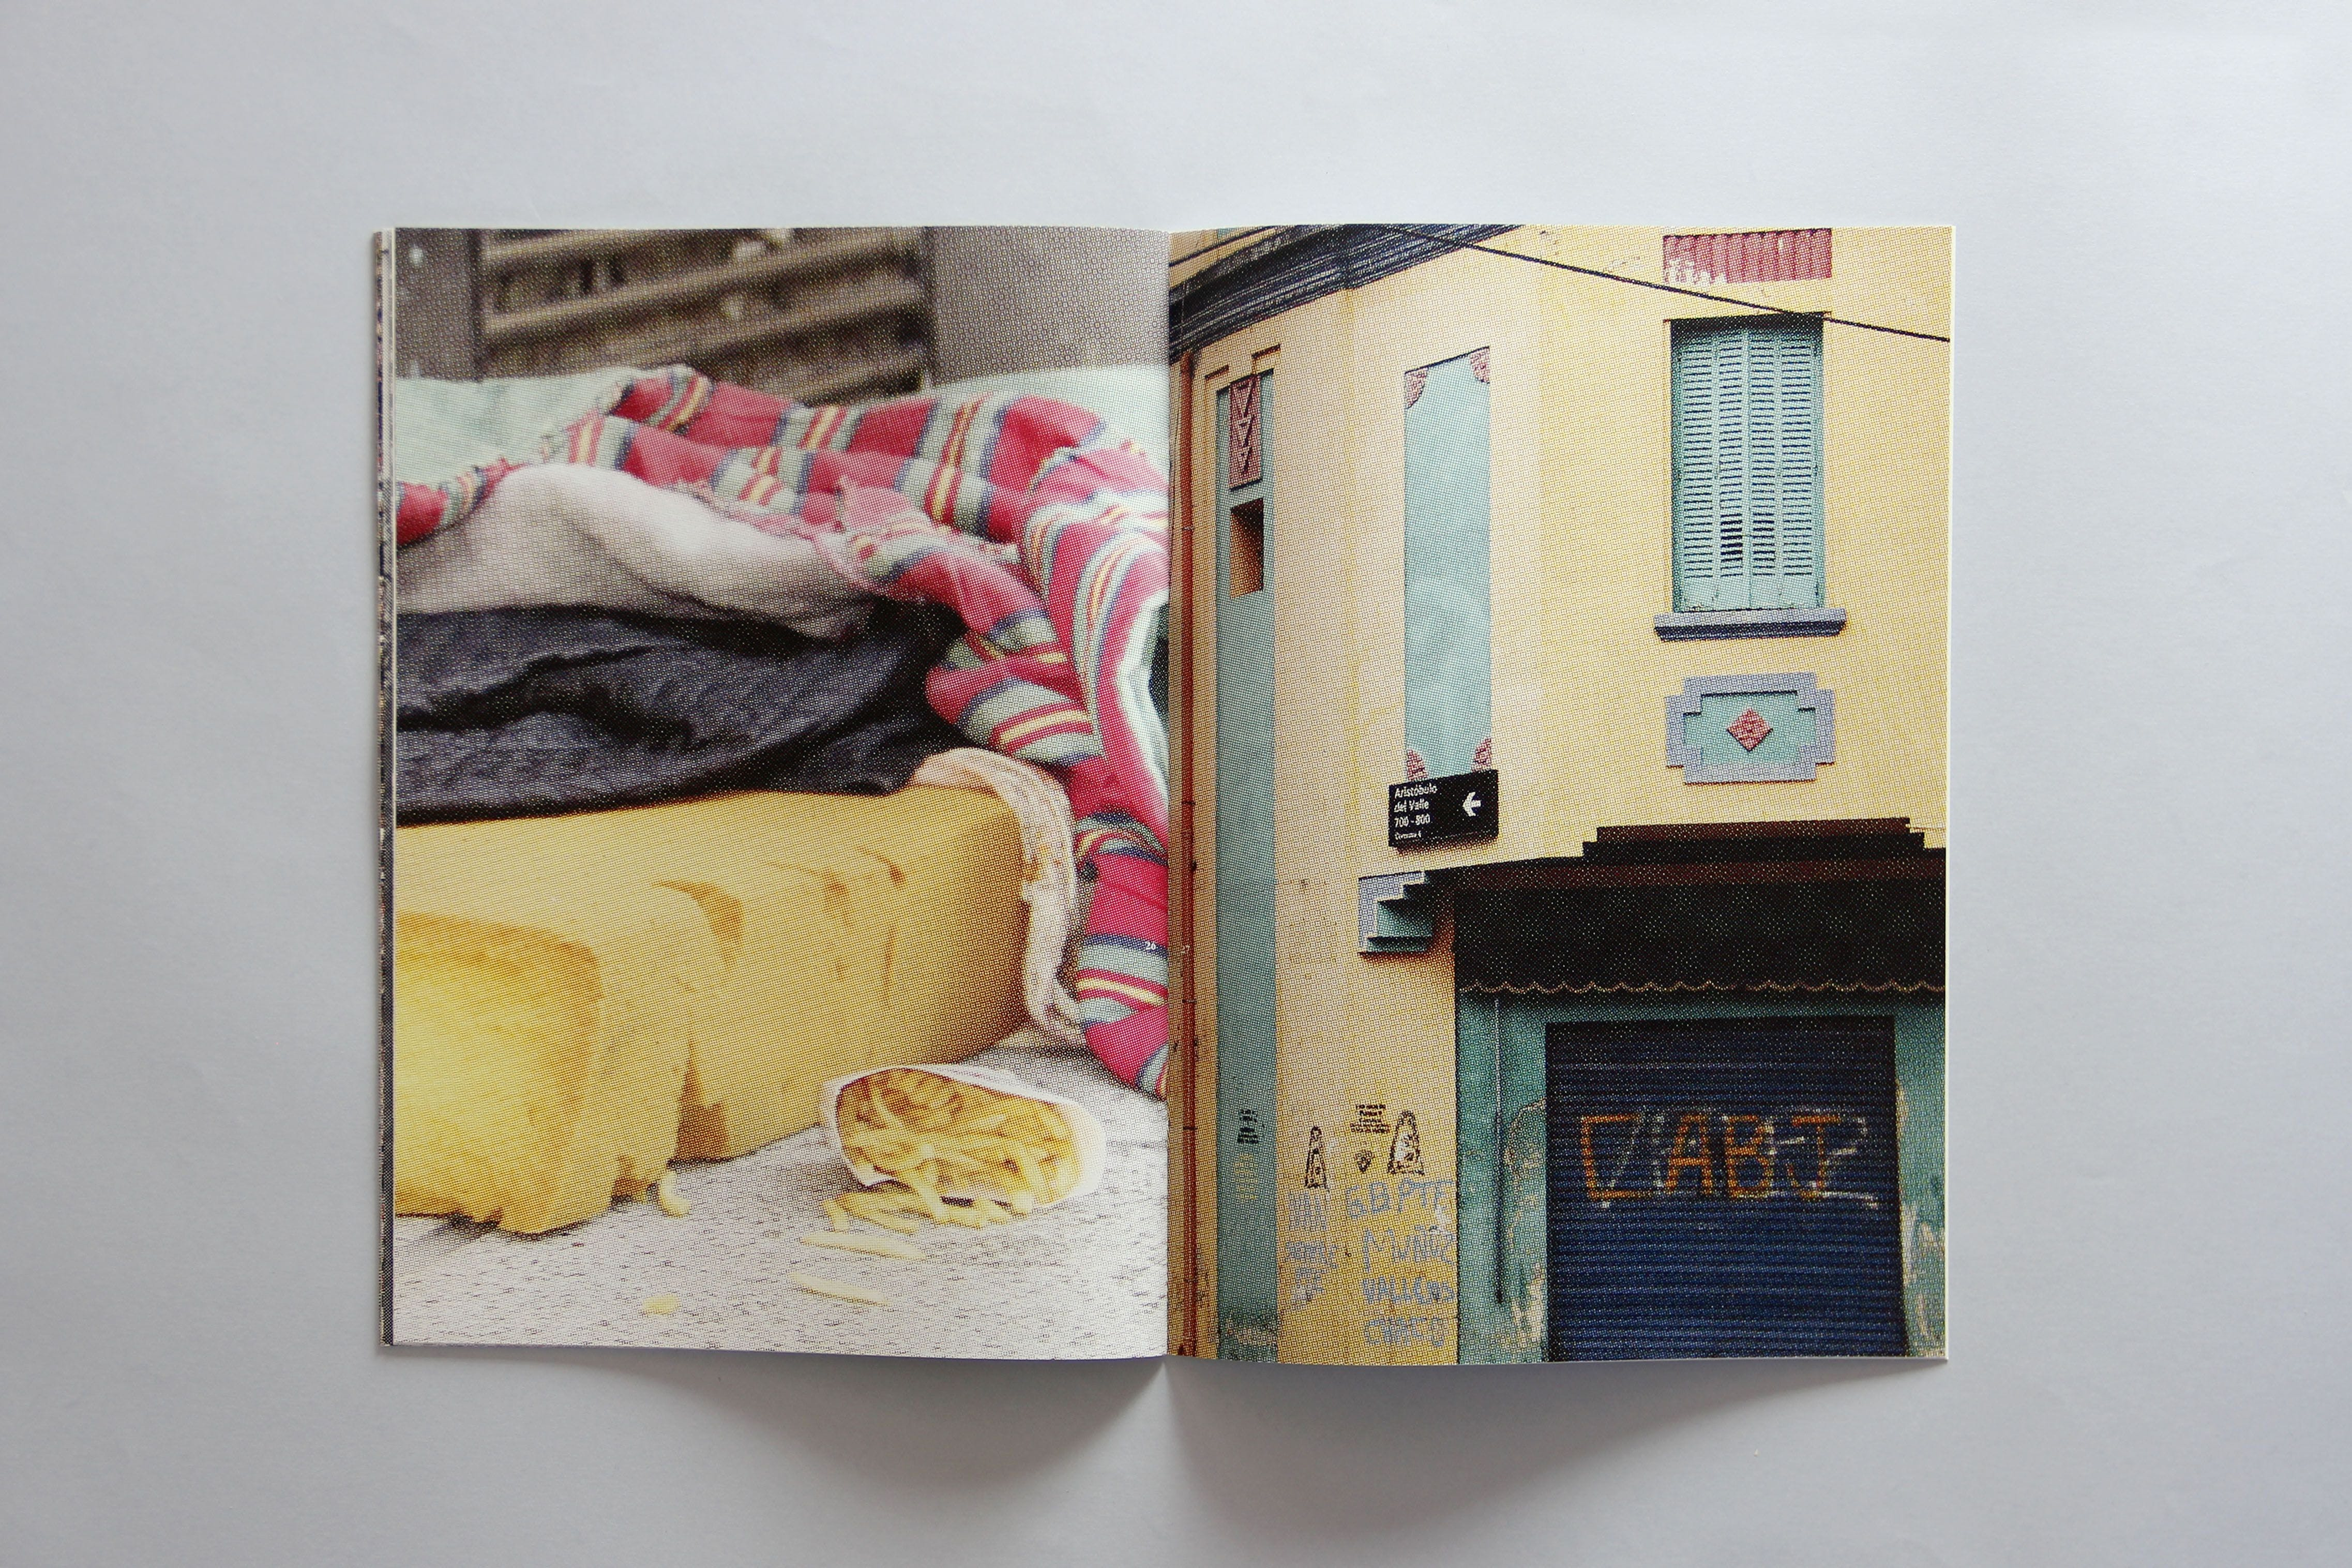 left page depicting some old bedding, right page depicting a store front in Argentina